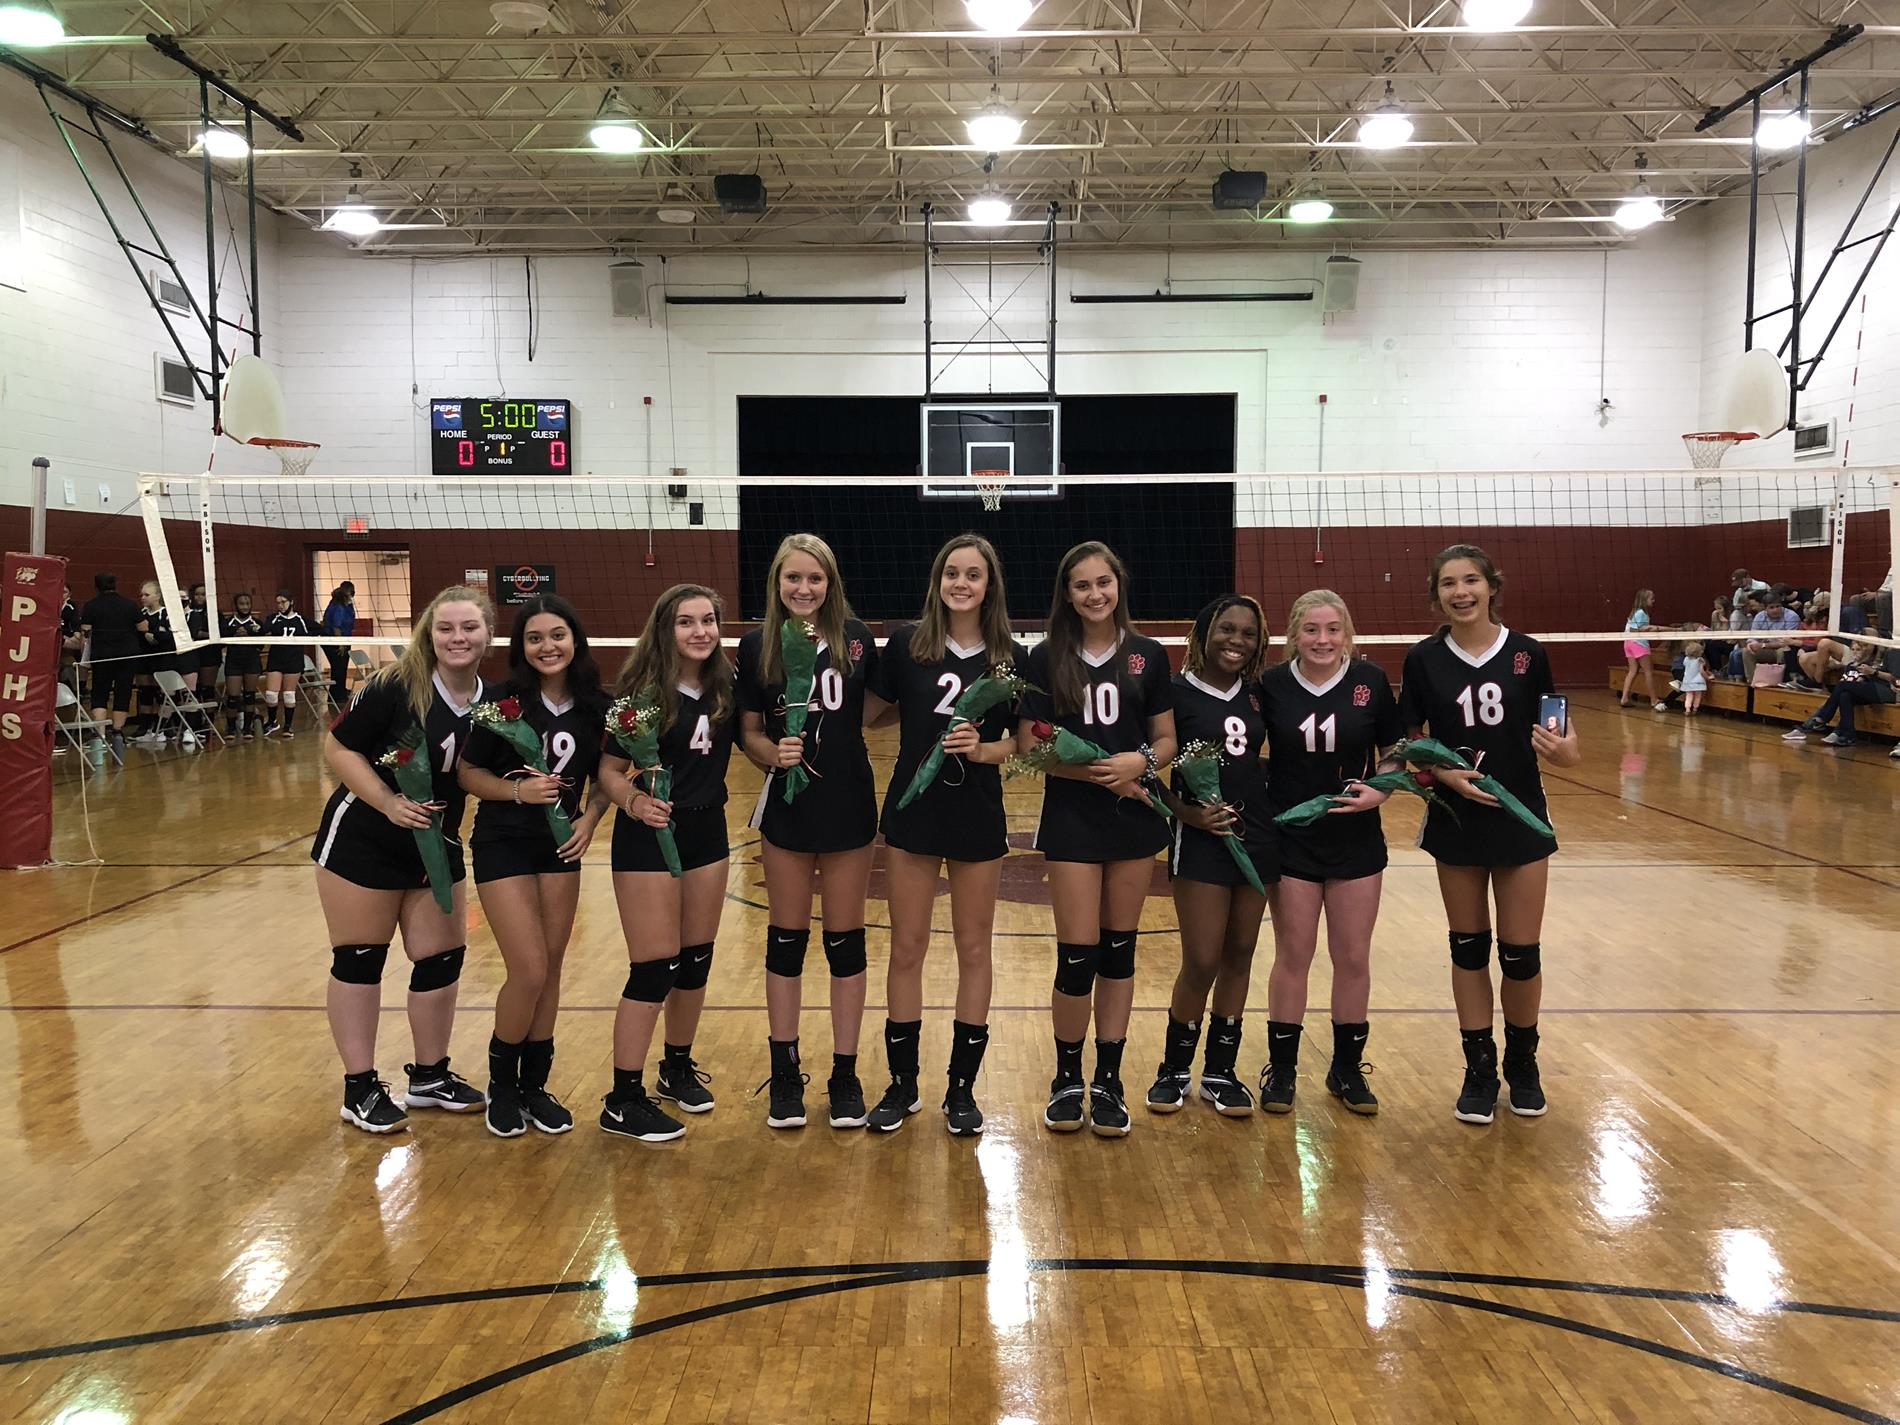 2020 PJHS Volleyball 8th graders